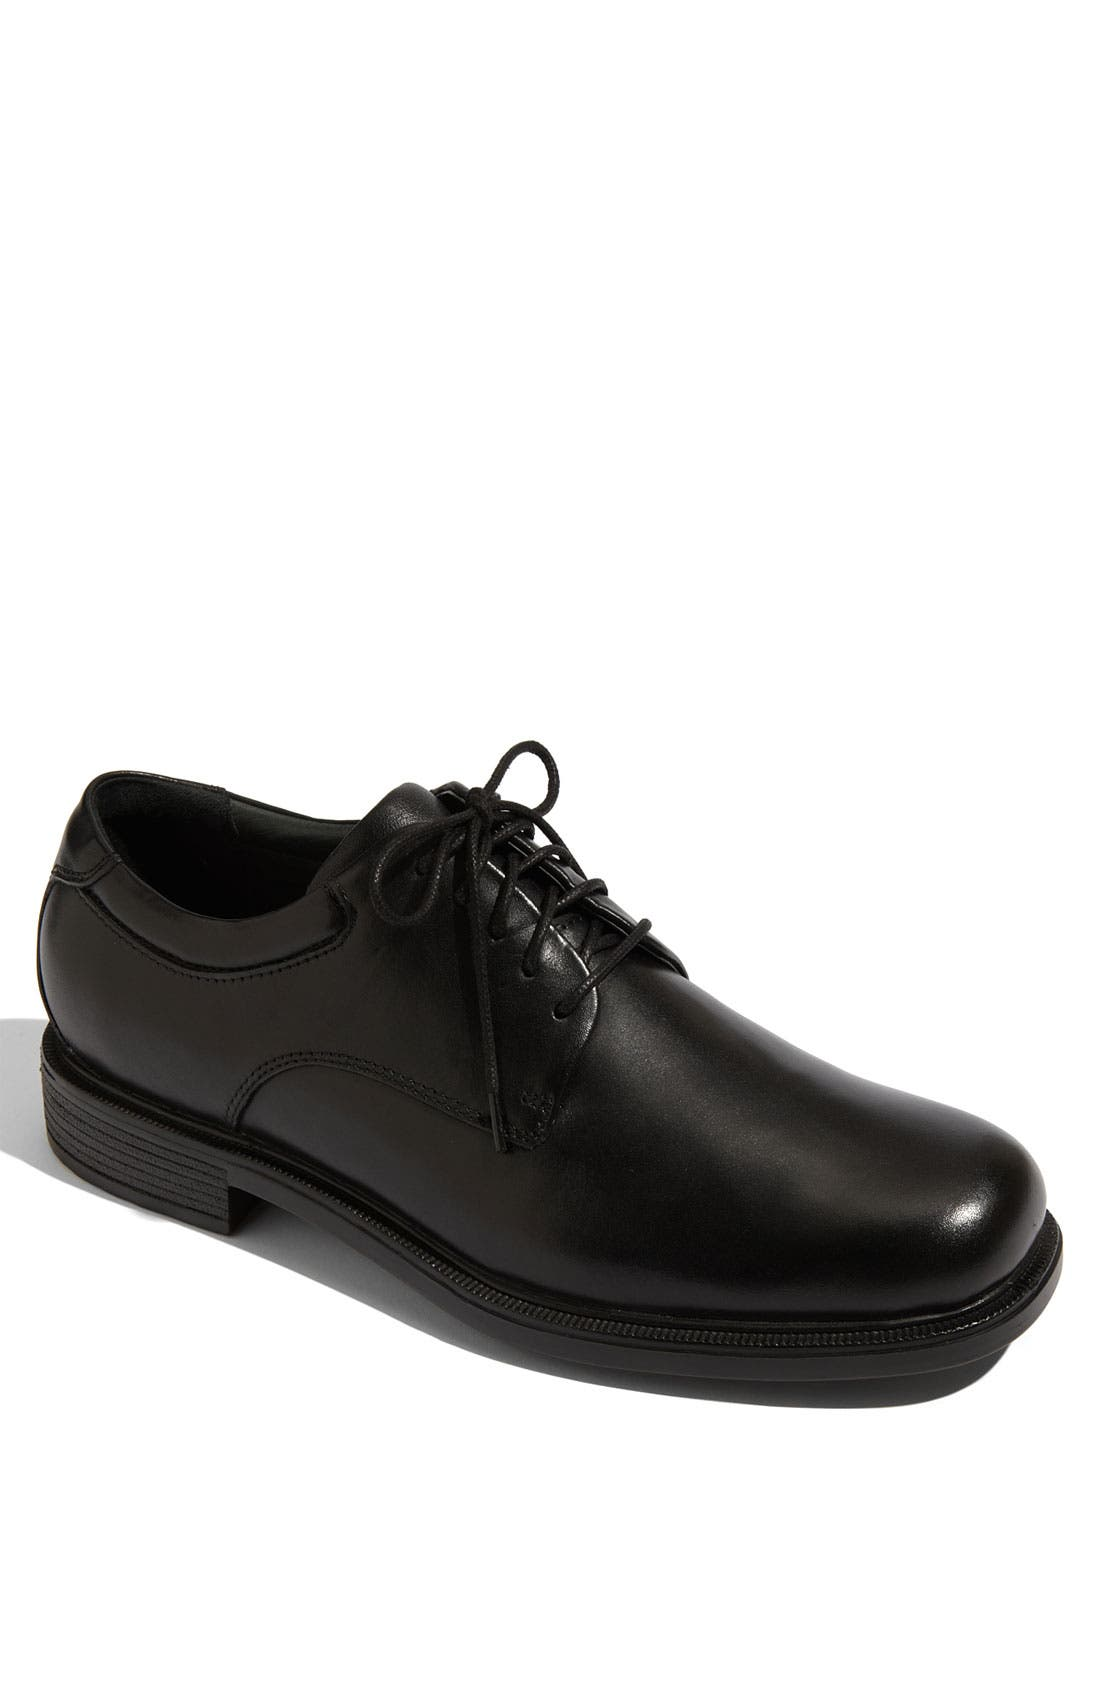 Main Image - Rockport 'Margin' Oxford (Men)